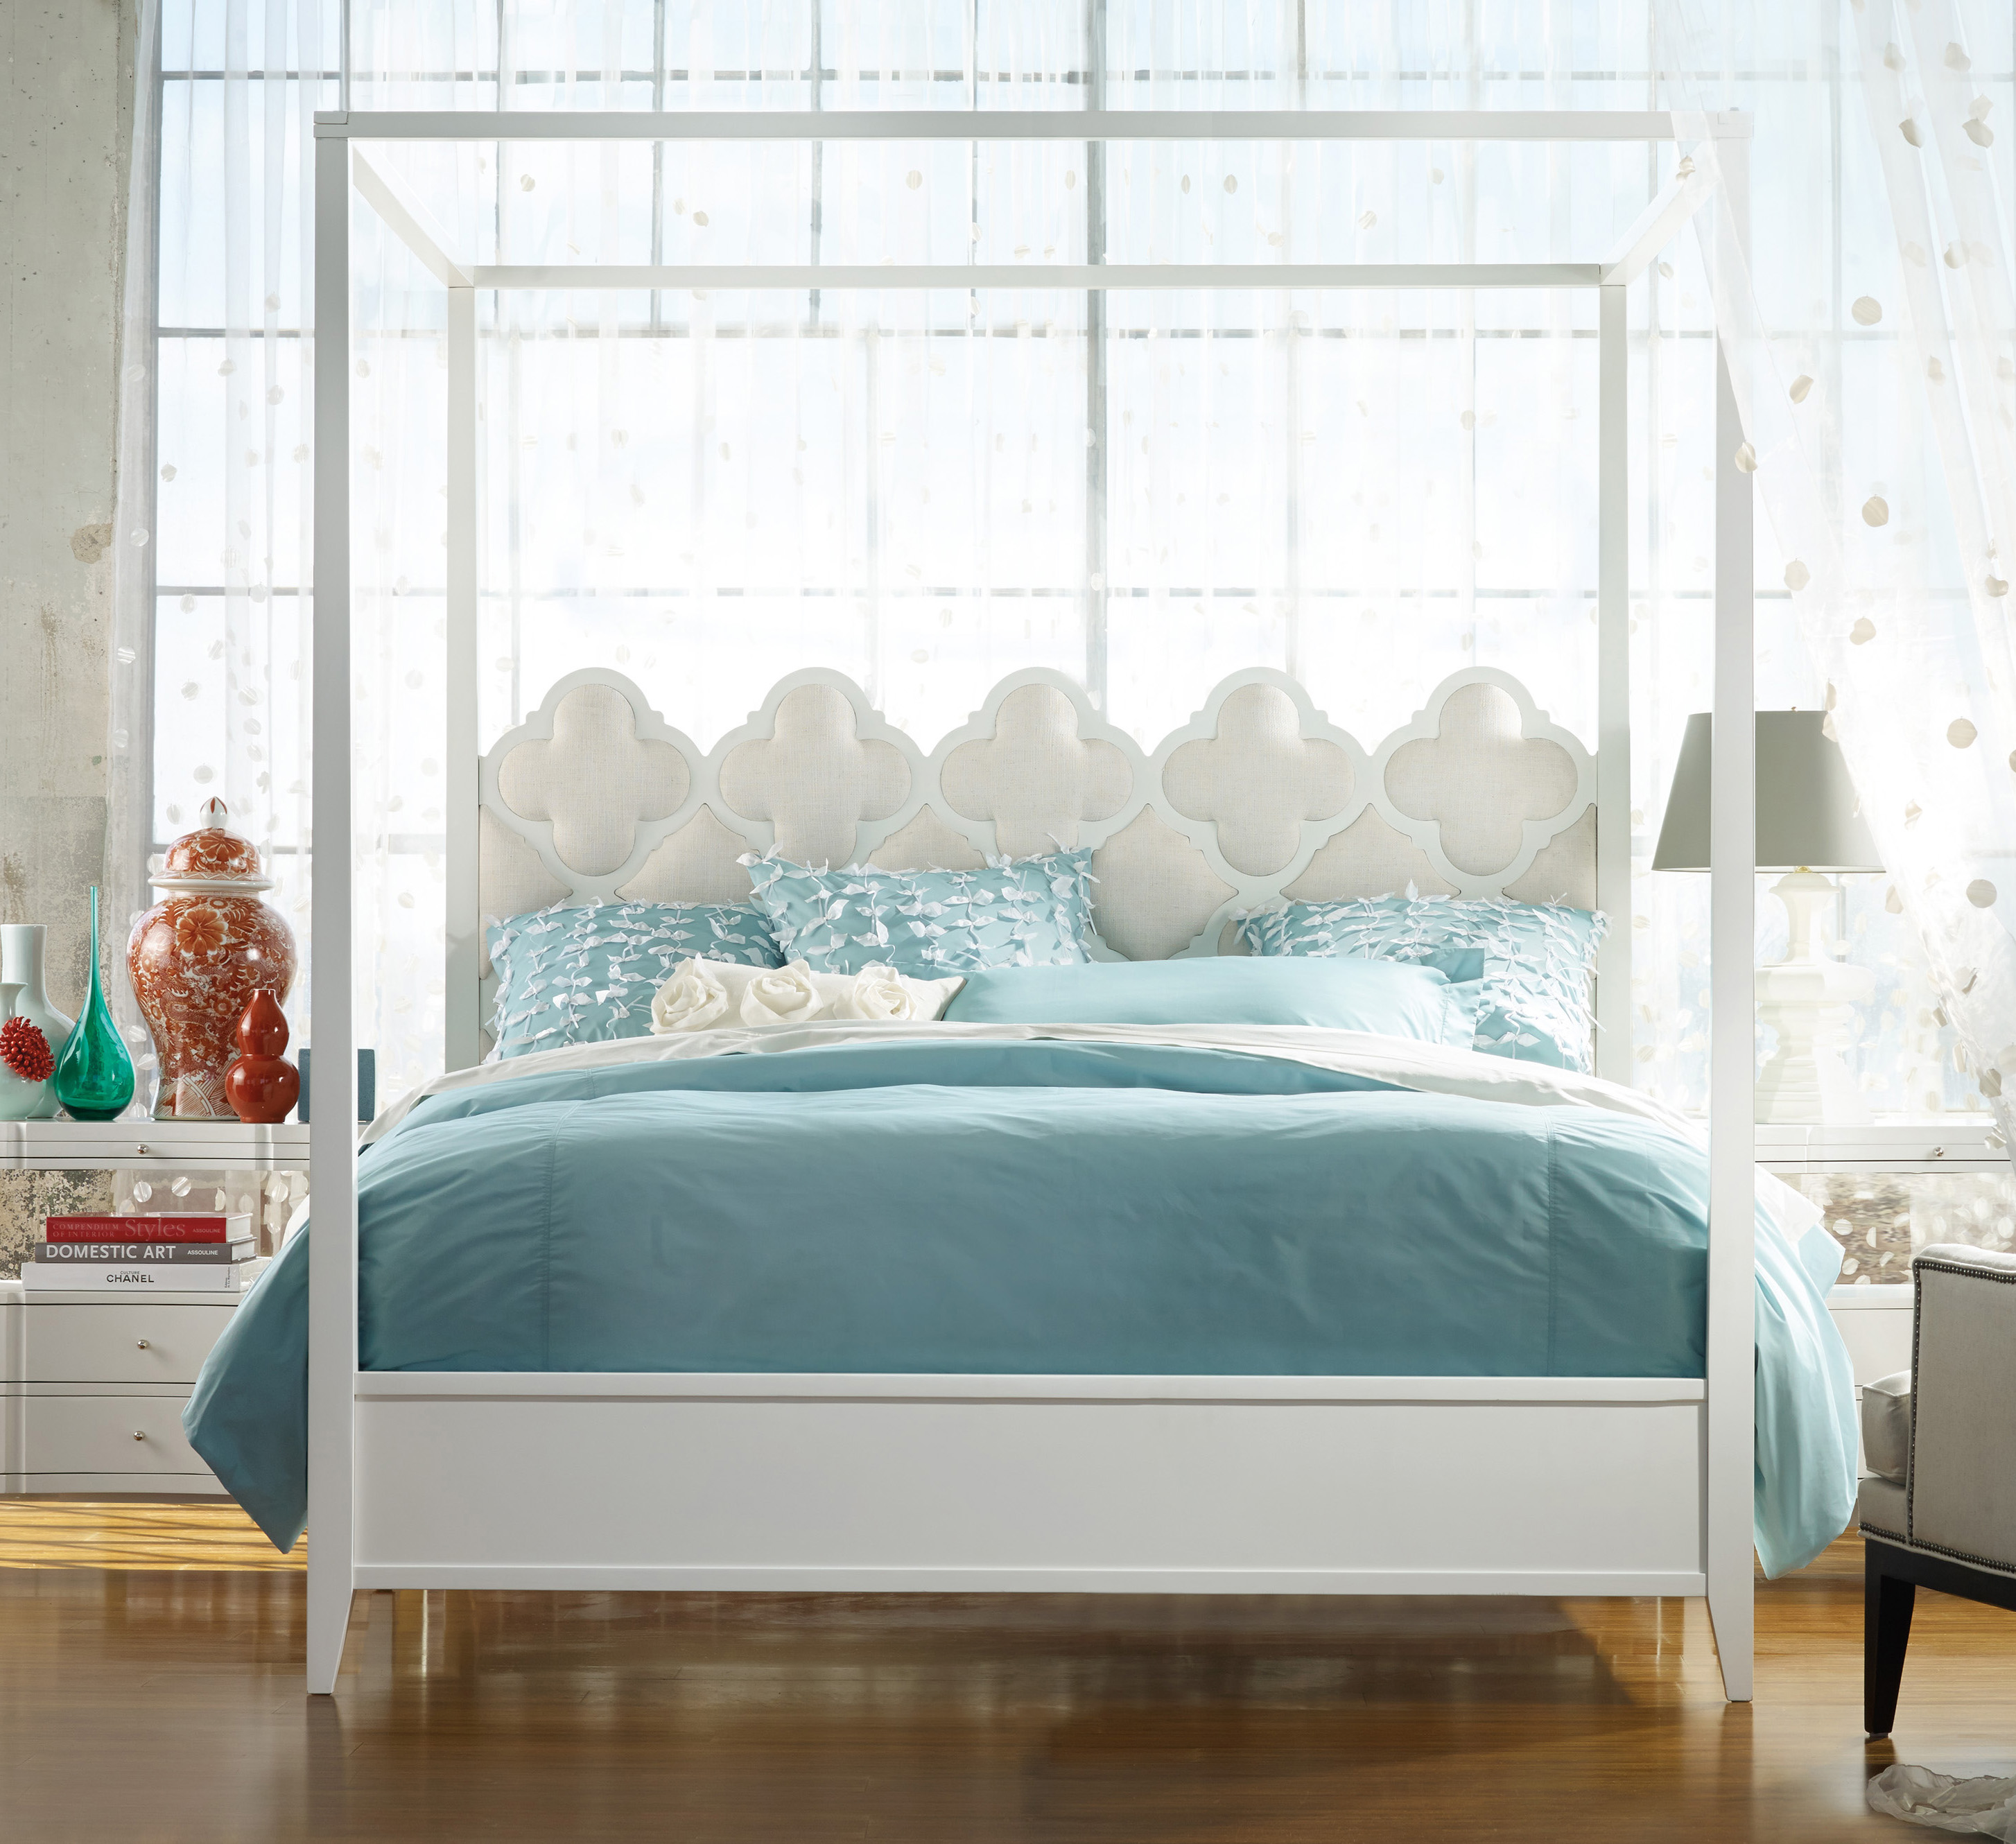 New A memorable bed makes an unforgettable bedroom